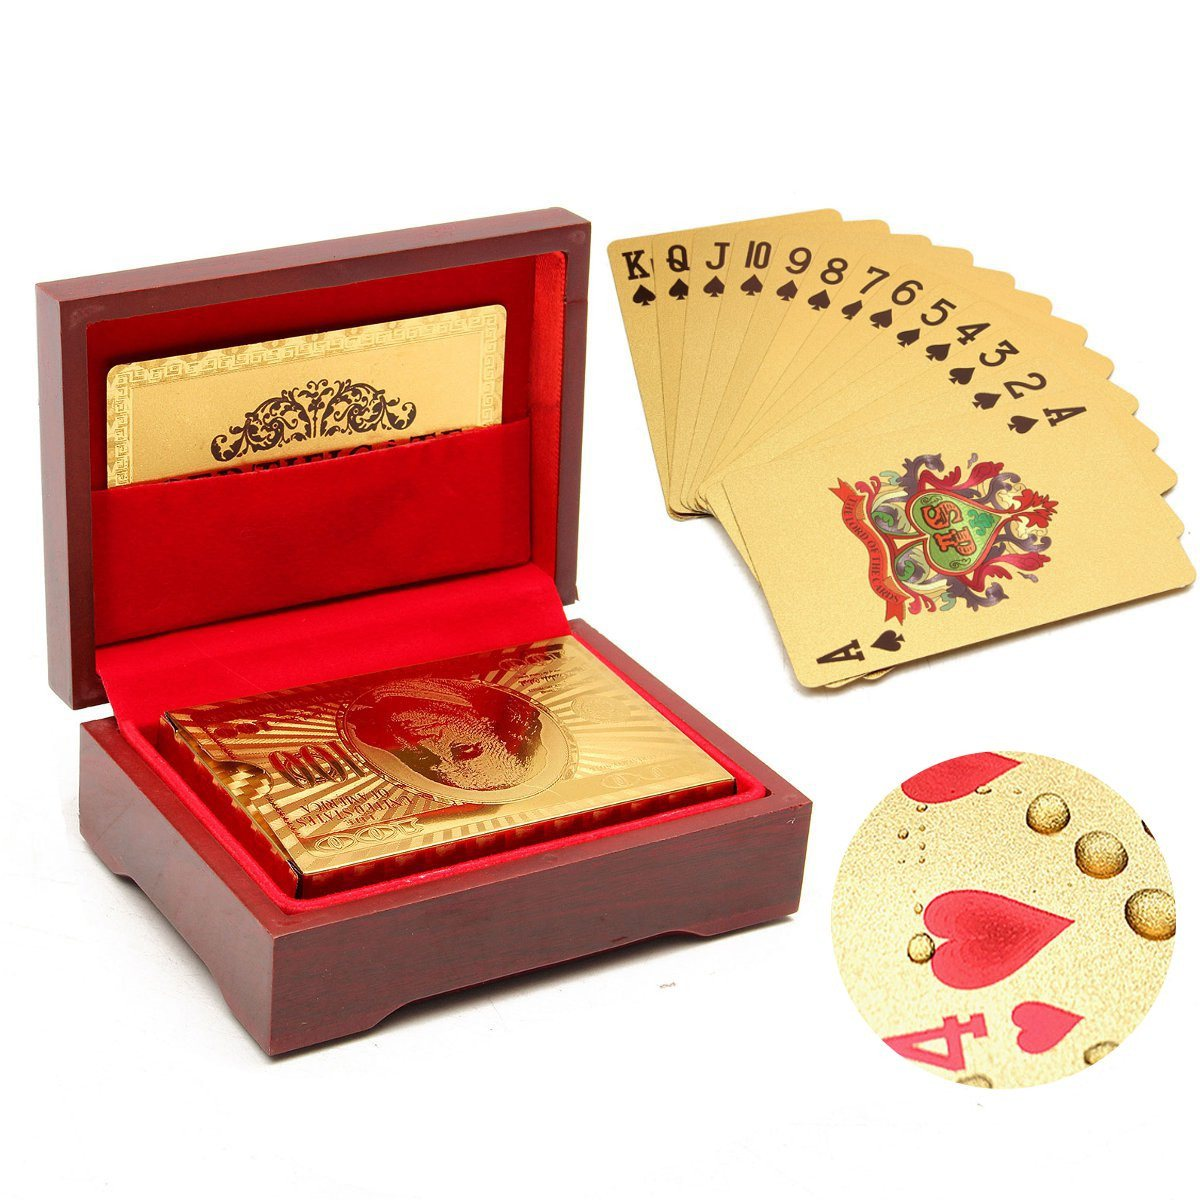 54Pcs/Set Plastic Waterproof Gold Poker Playing Cards With Red Box Perfect for Birthday Public Relations Planning Best Gifts